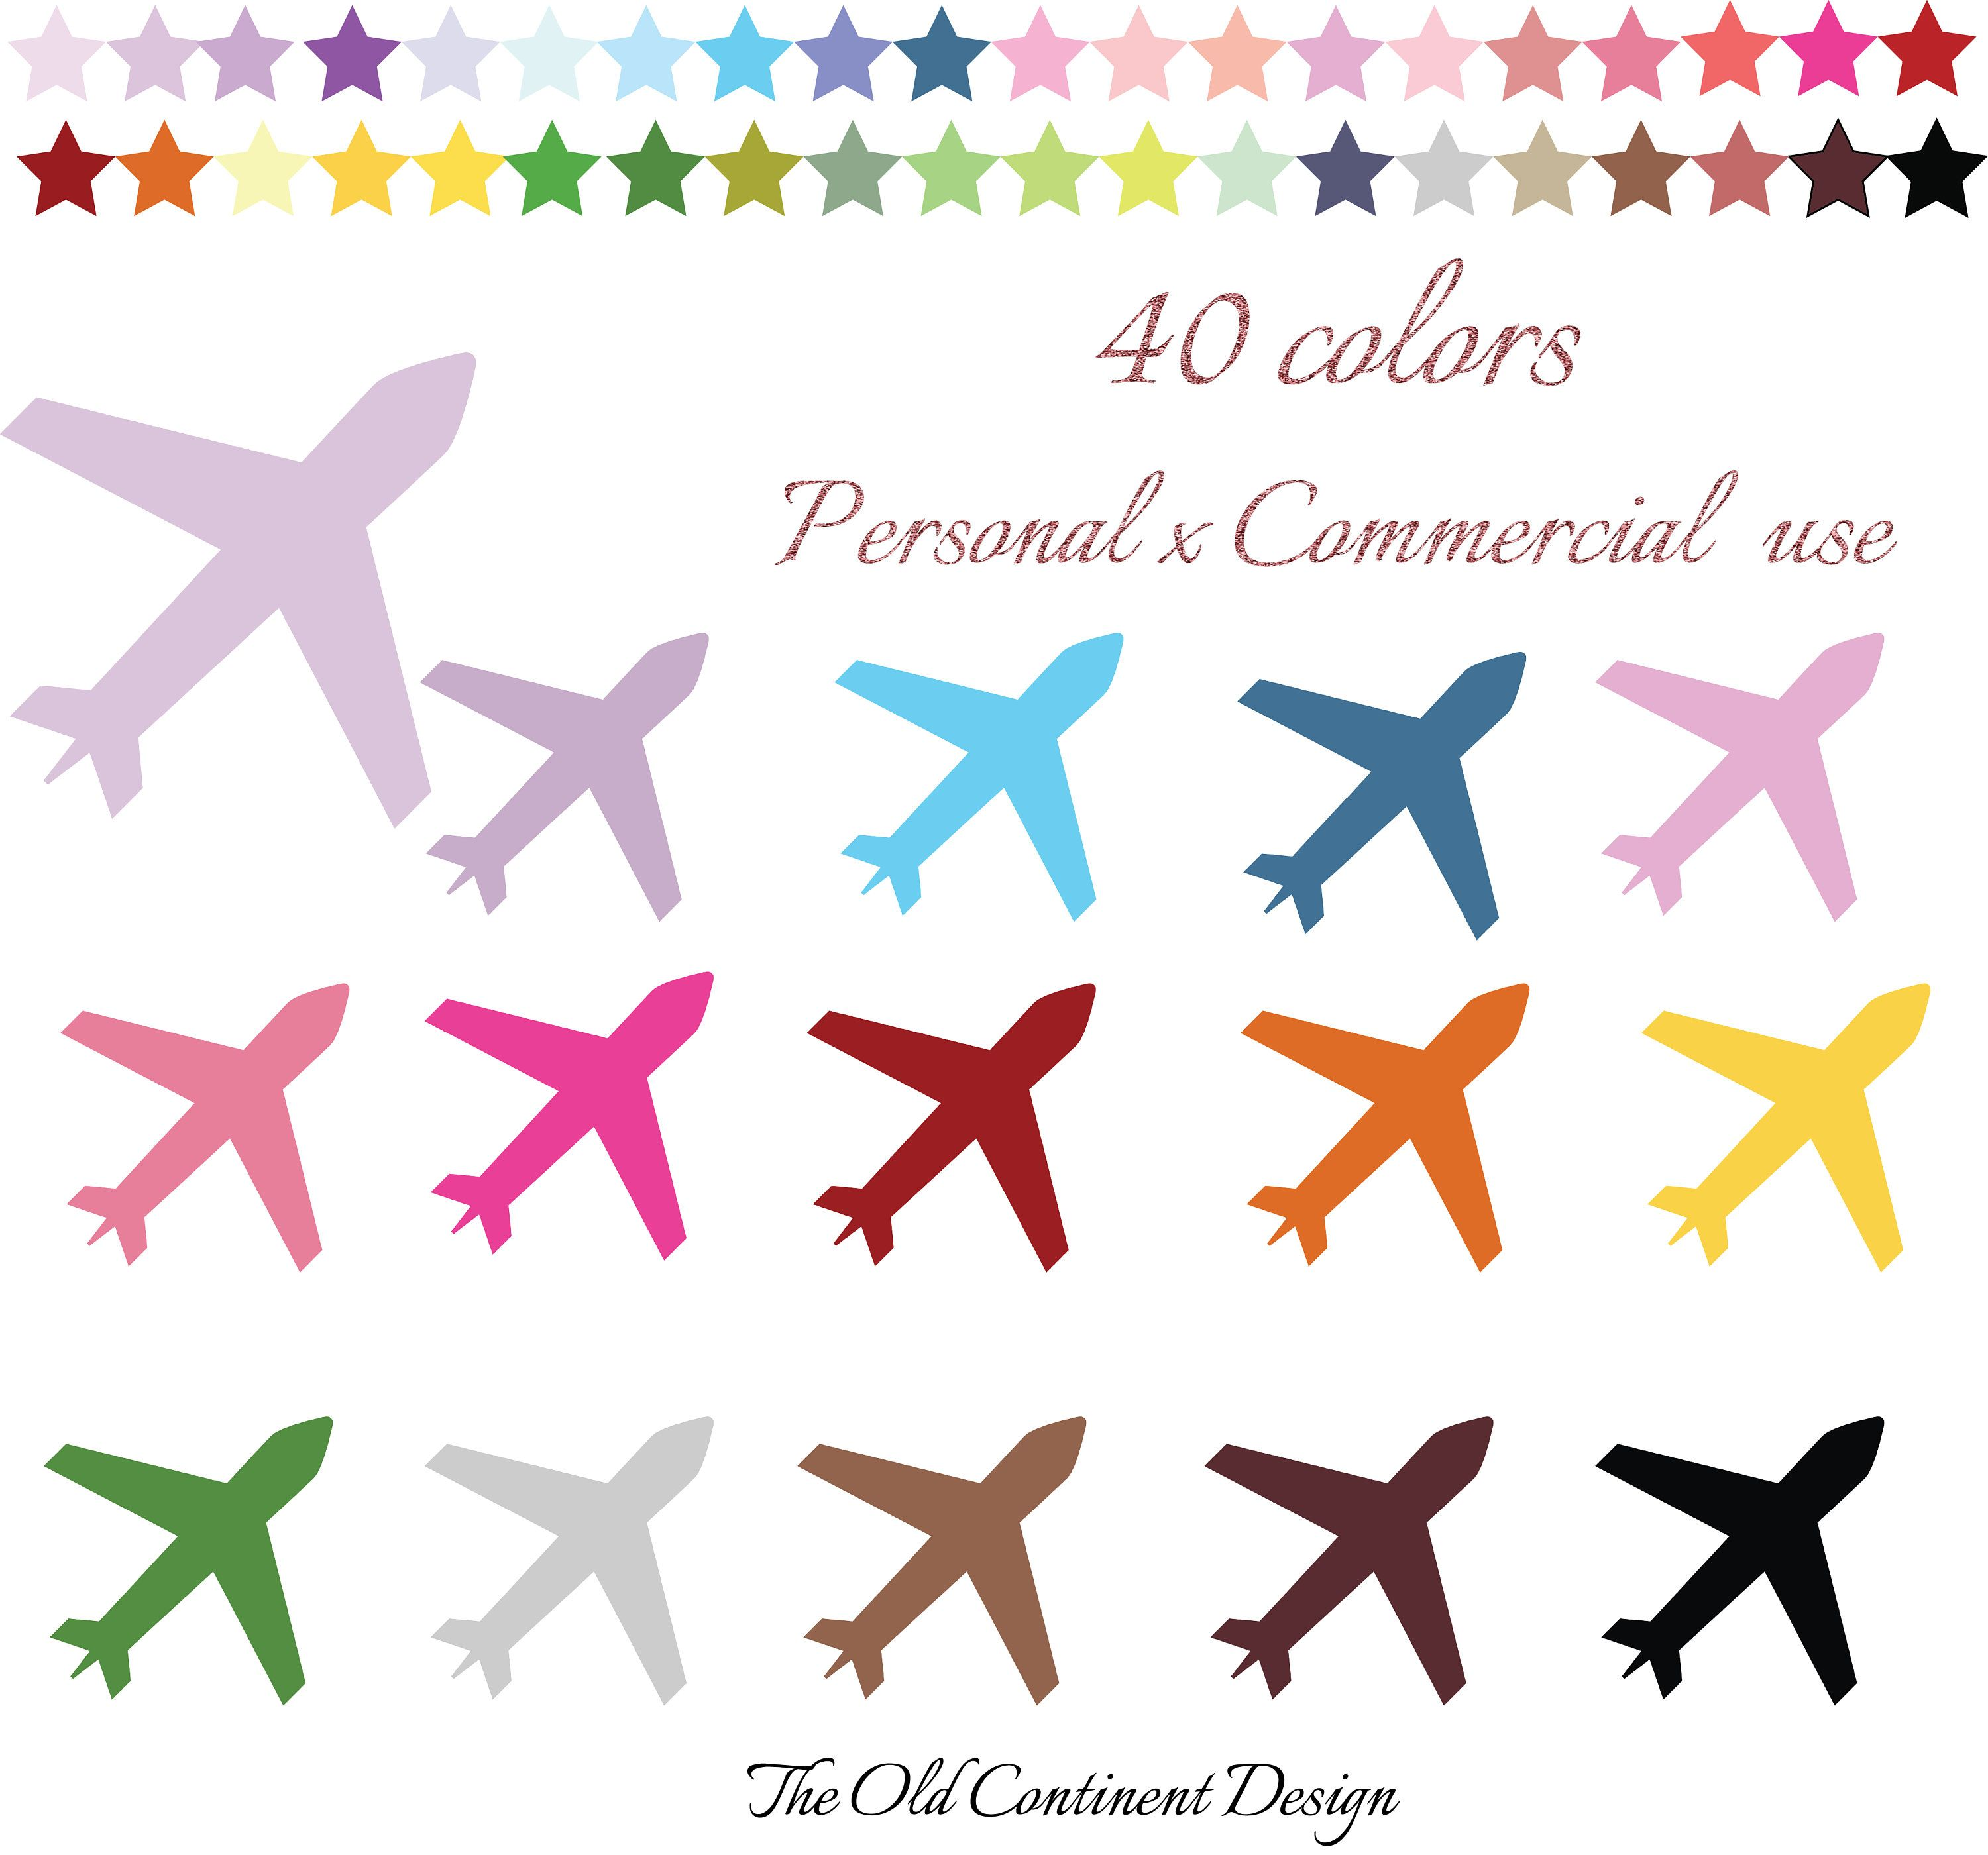 hight resolution of airplane clipart plane clipart plane clip art airplane icon plane icon planes clipart aeroplane clipart aircraft cl 020